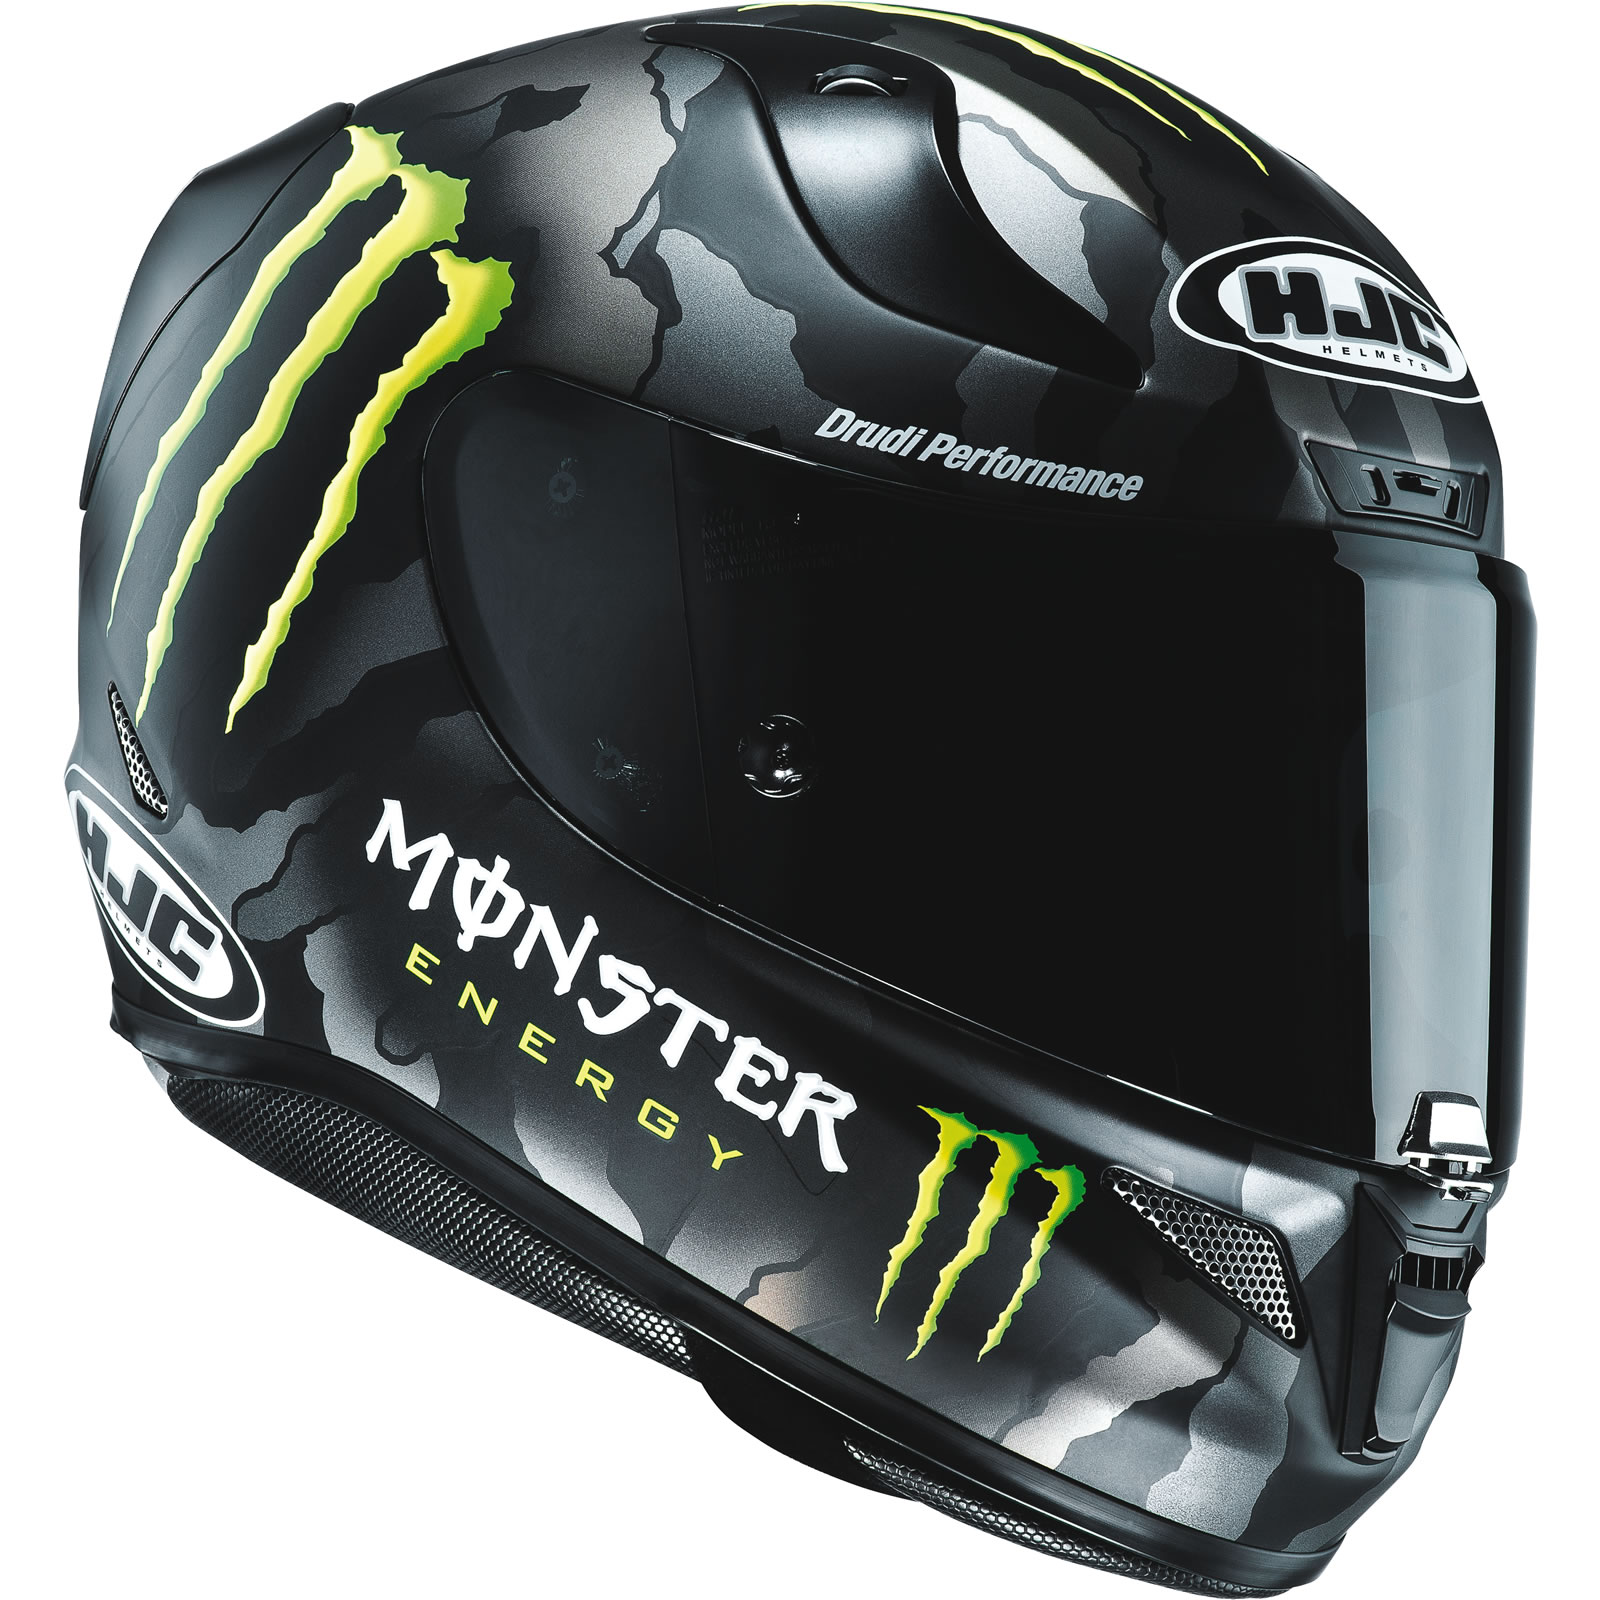 Hjc Rpha 11 >> Details About Hjc Rpha 11 Monster Military Limited Edition Motorcycle Helmet Visor Motorbike